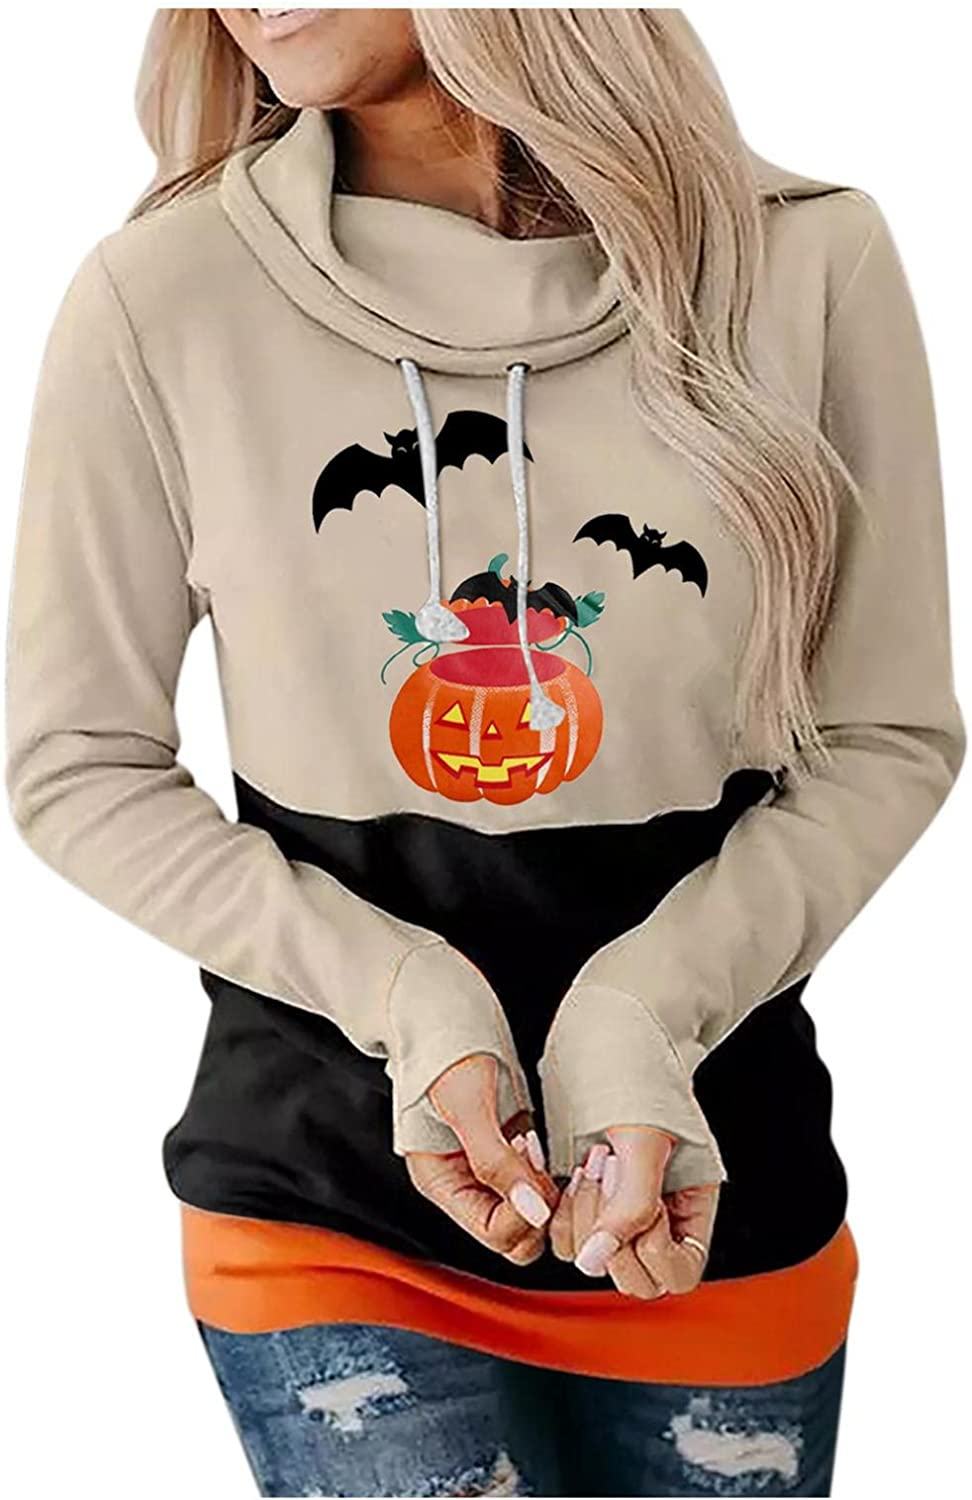 Hessimy Hoodies for Women with Designs,Hoodies for Women Casual Zip Up Long Sleeve Top with Pockets Trendy Fall Stripe Blouse Loose Fit Pullover Sweatshirt Plain Hoodies